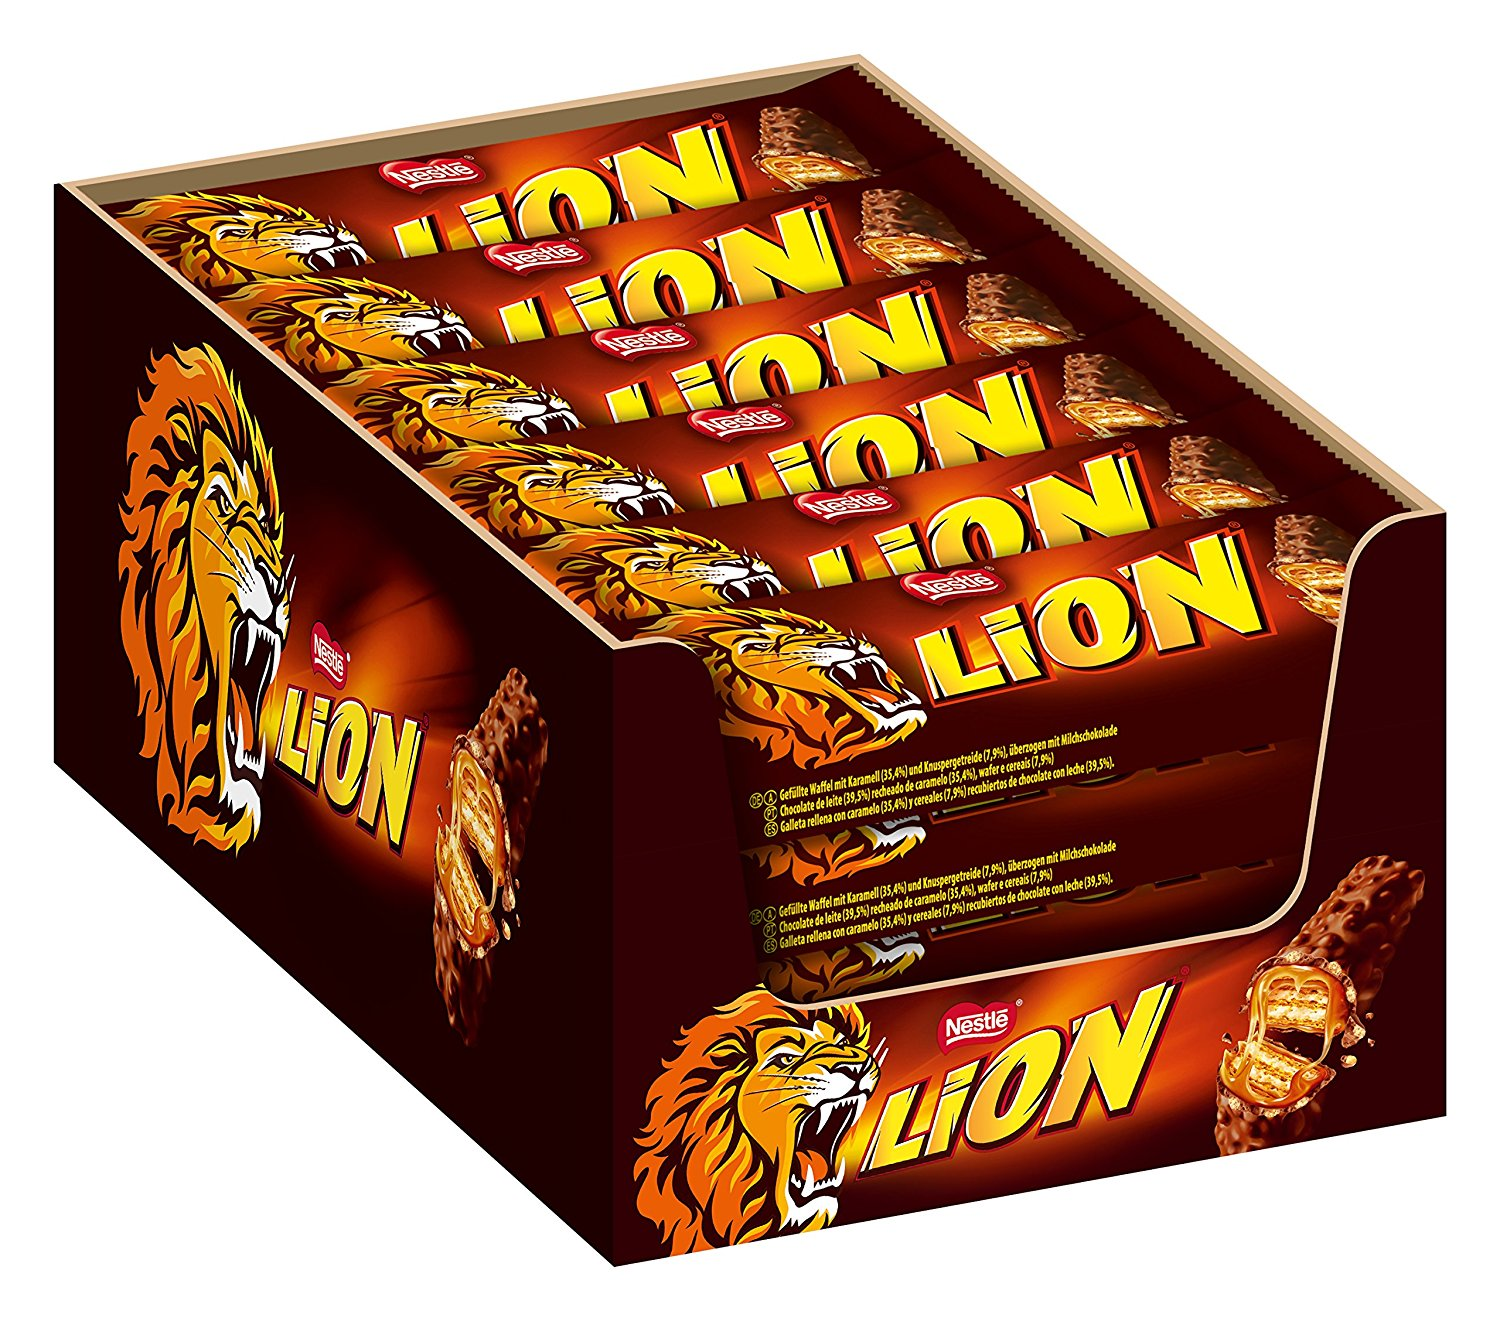 Nestle Lion Schoko Riegel amazon